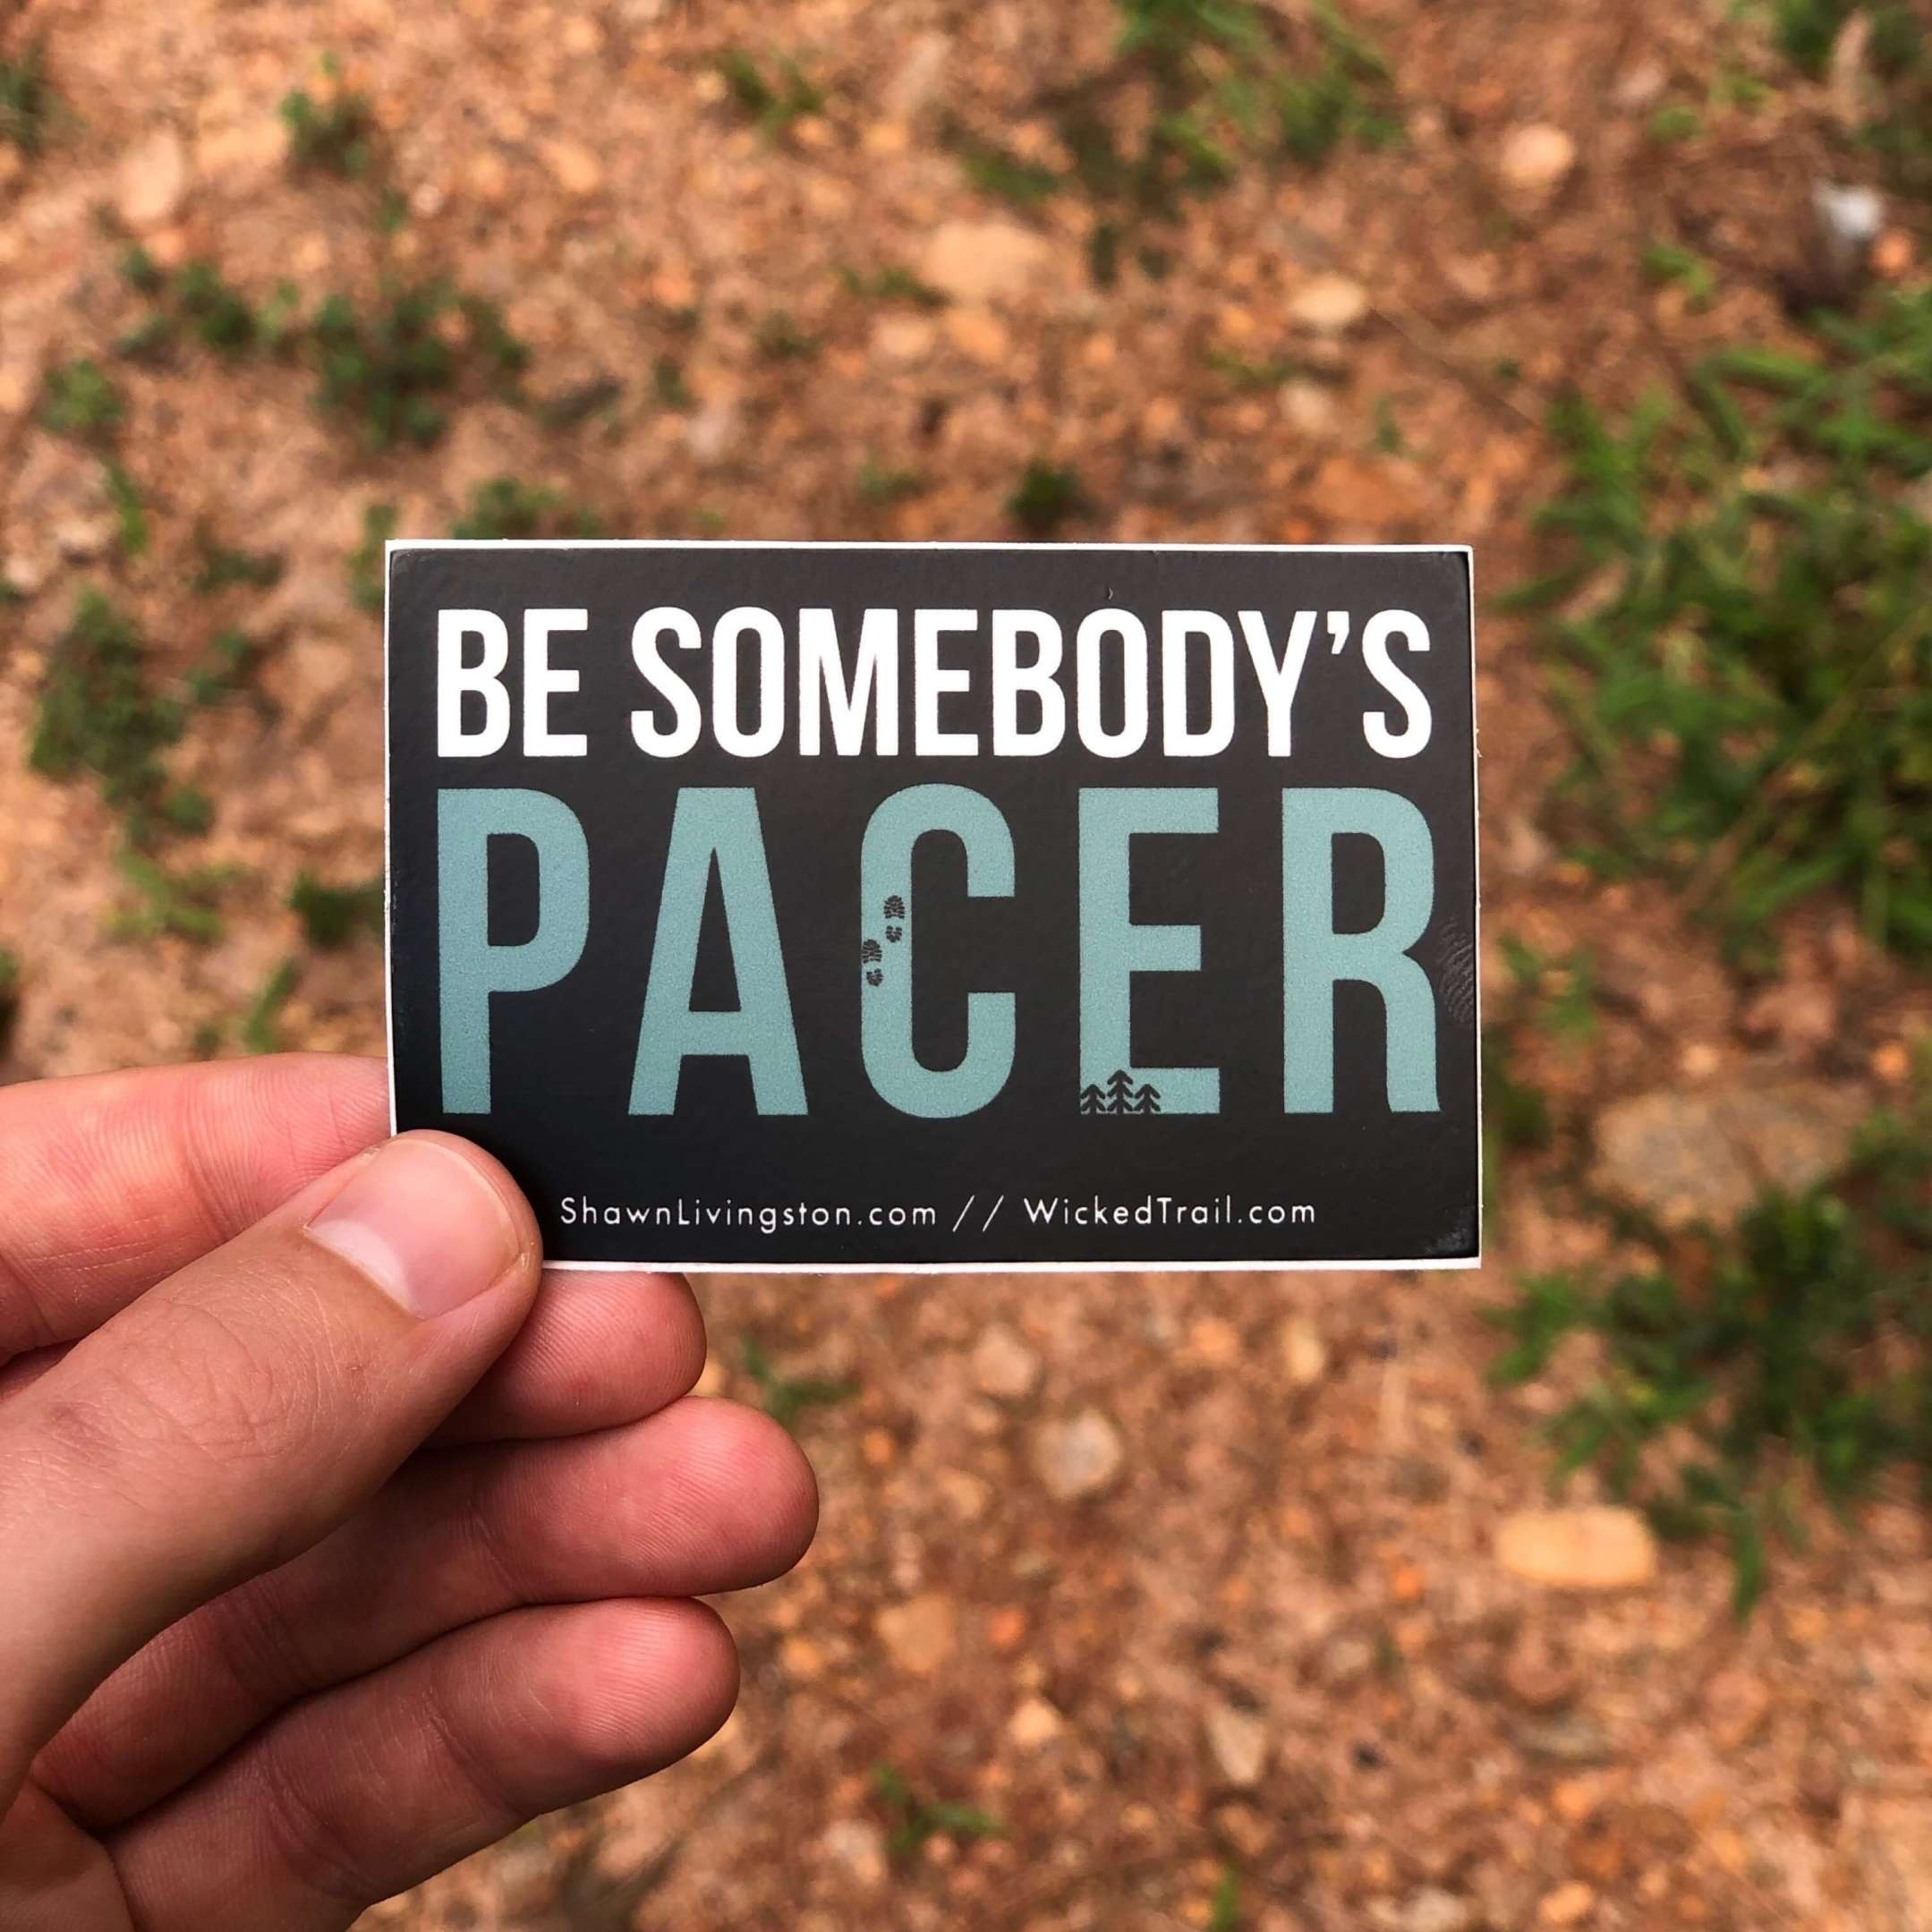 A Pacer's voice kept my feet moving during the darkness of my first 100 mile race. - It was a Pacer that pulled me out of the hopelessness of heroin addiction.Look around you. Who can you pull up the mountain? Who can you inspire to change course? Who can you spark up conversation with, like the stranger at my 100 mile race, and leave them in a better place?